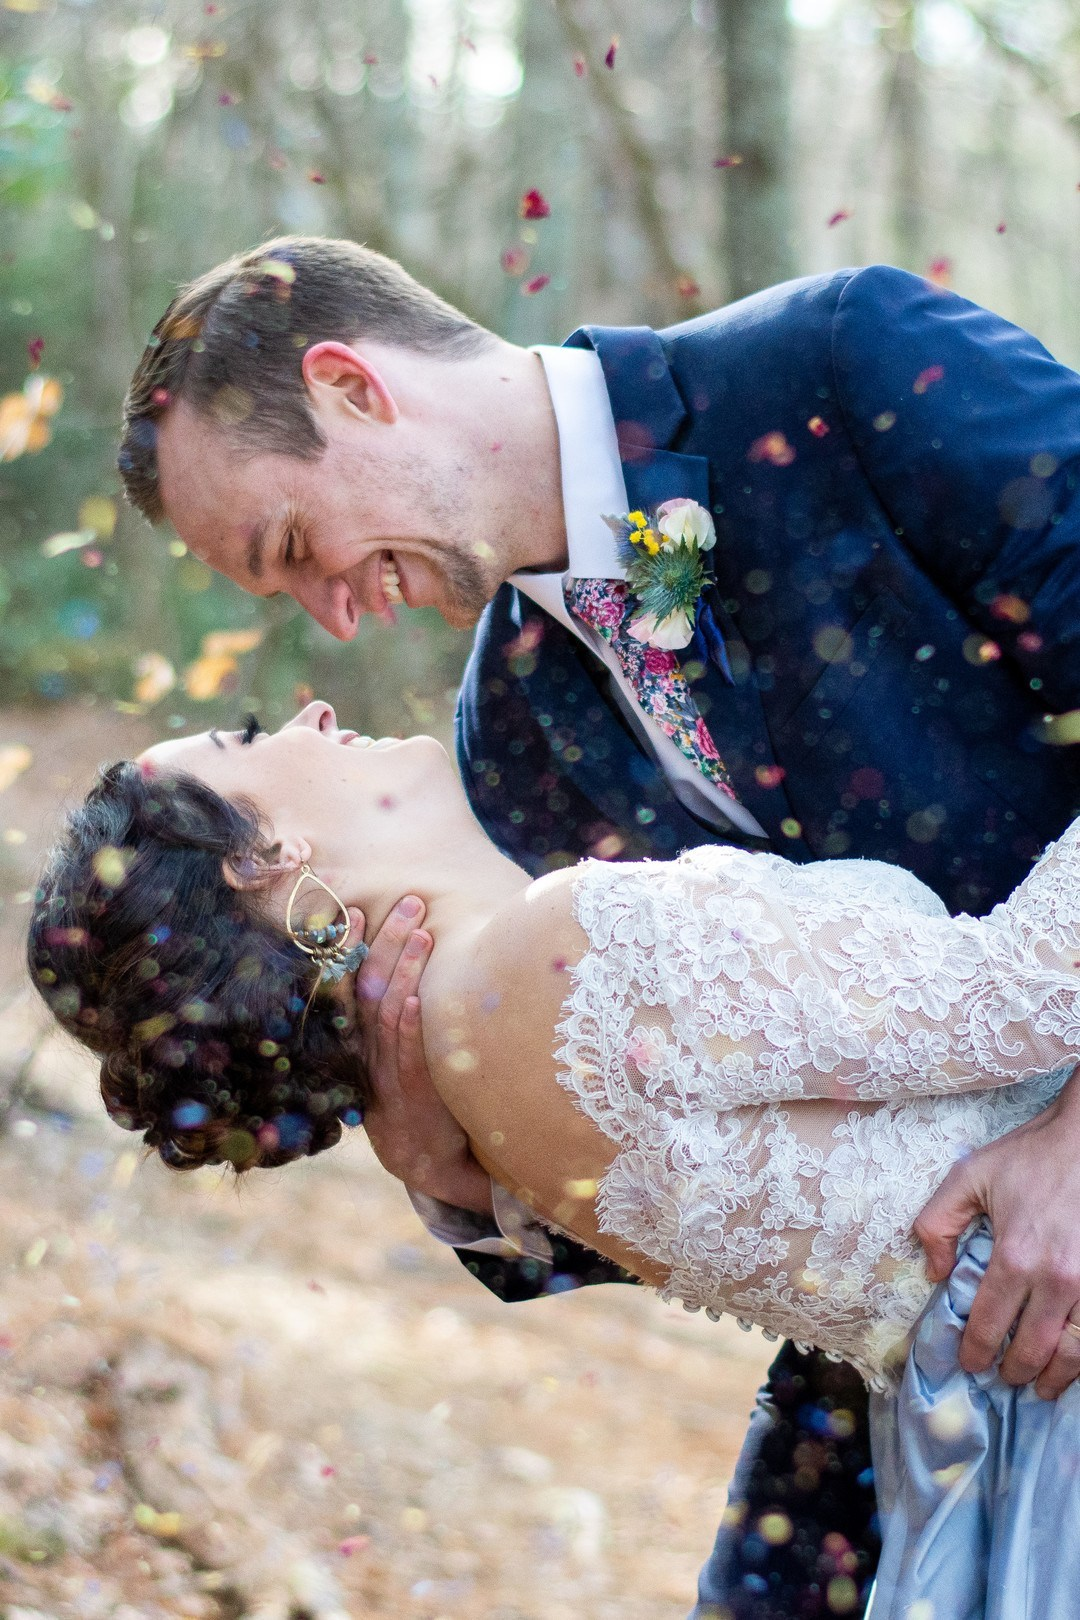 What a colorful wedding shoot without bright confetti